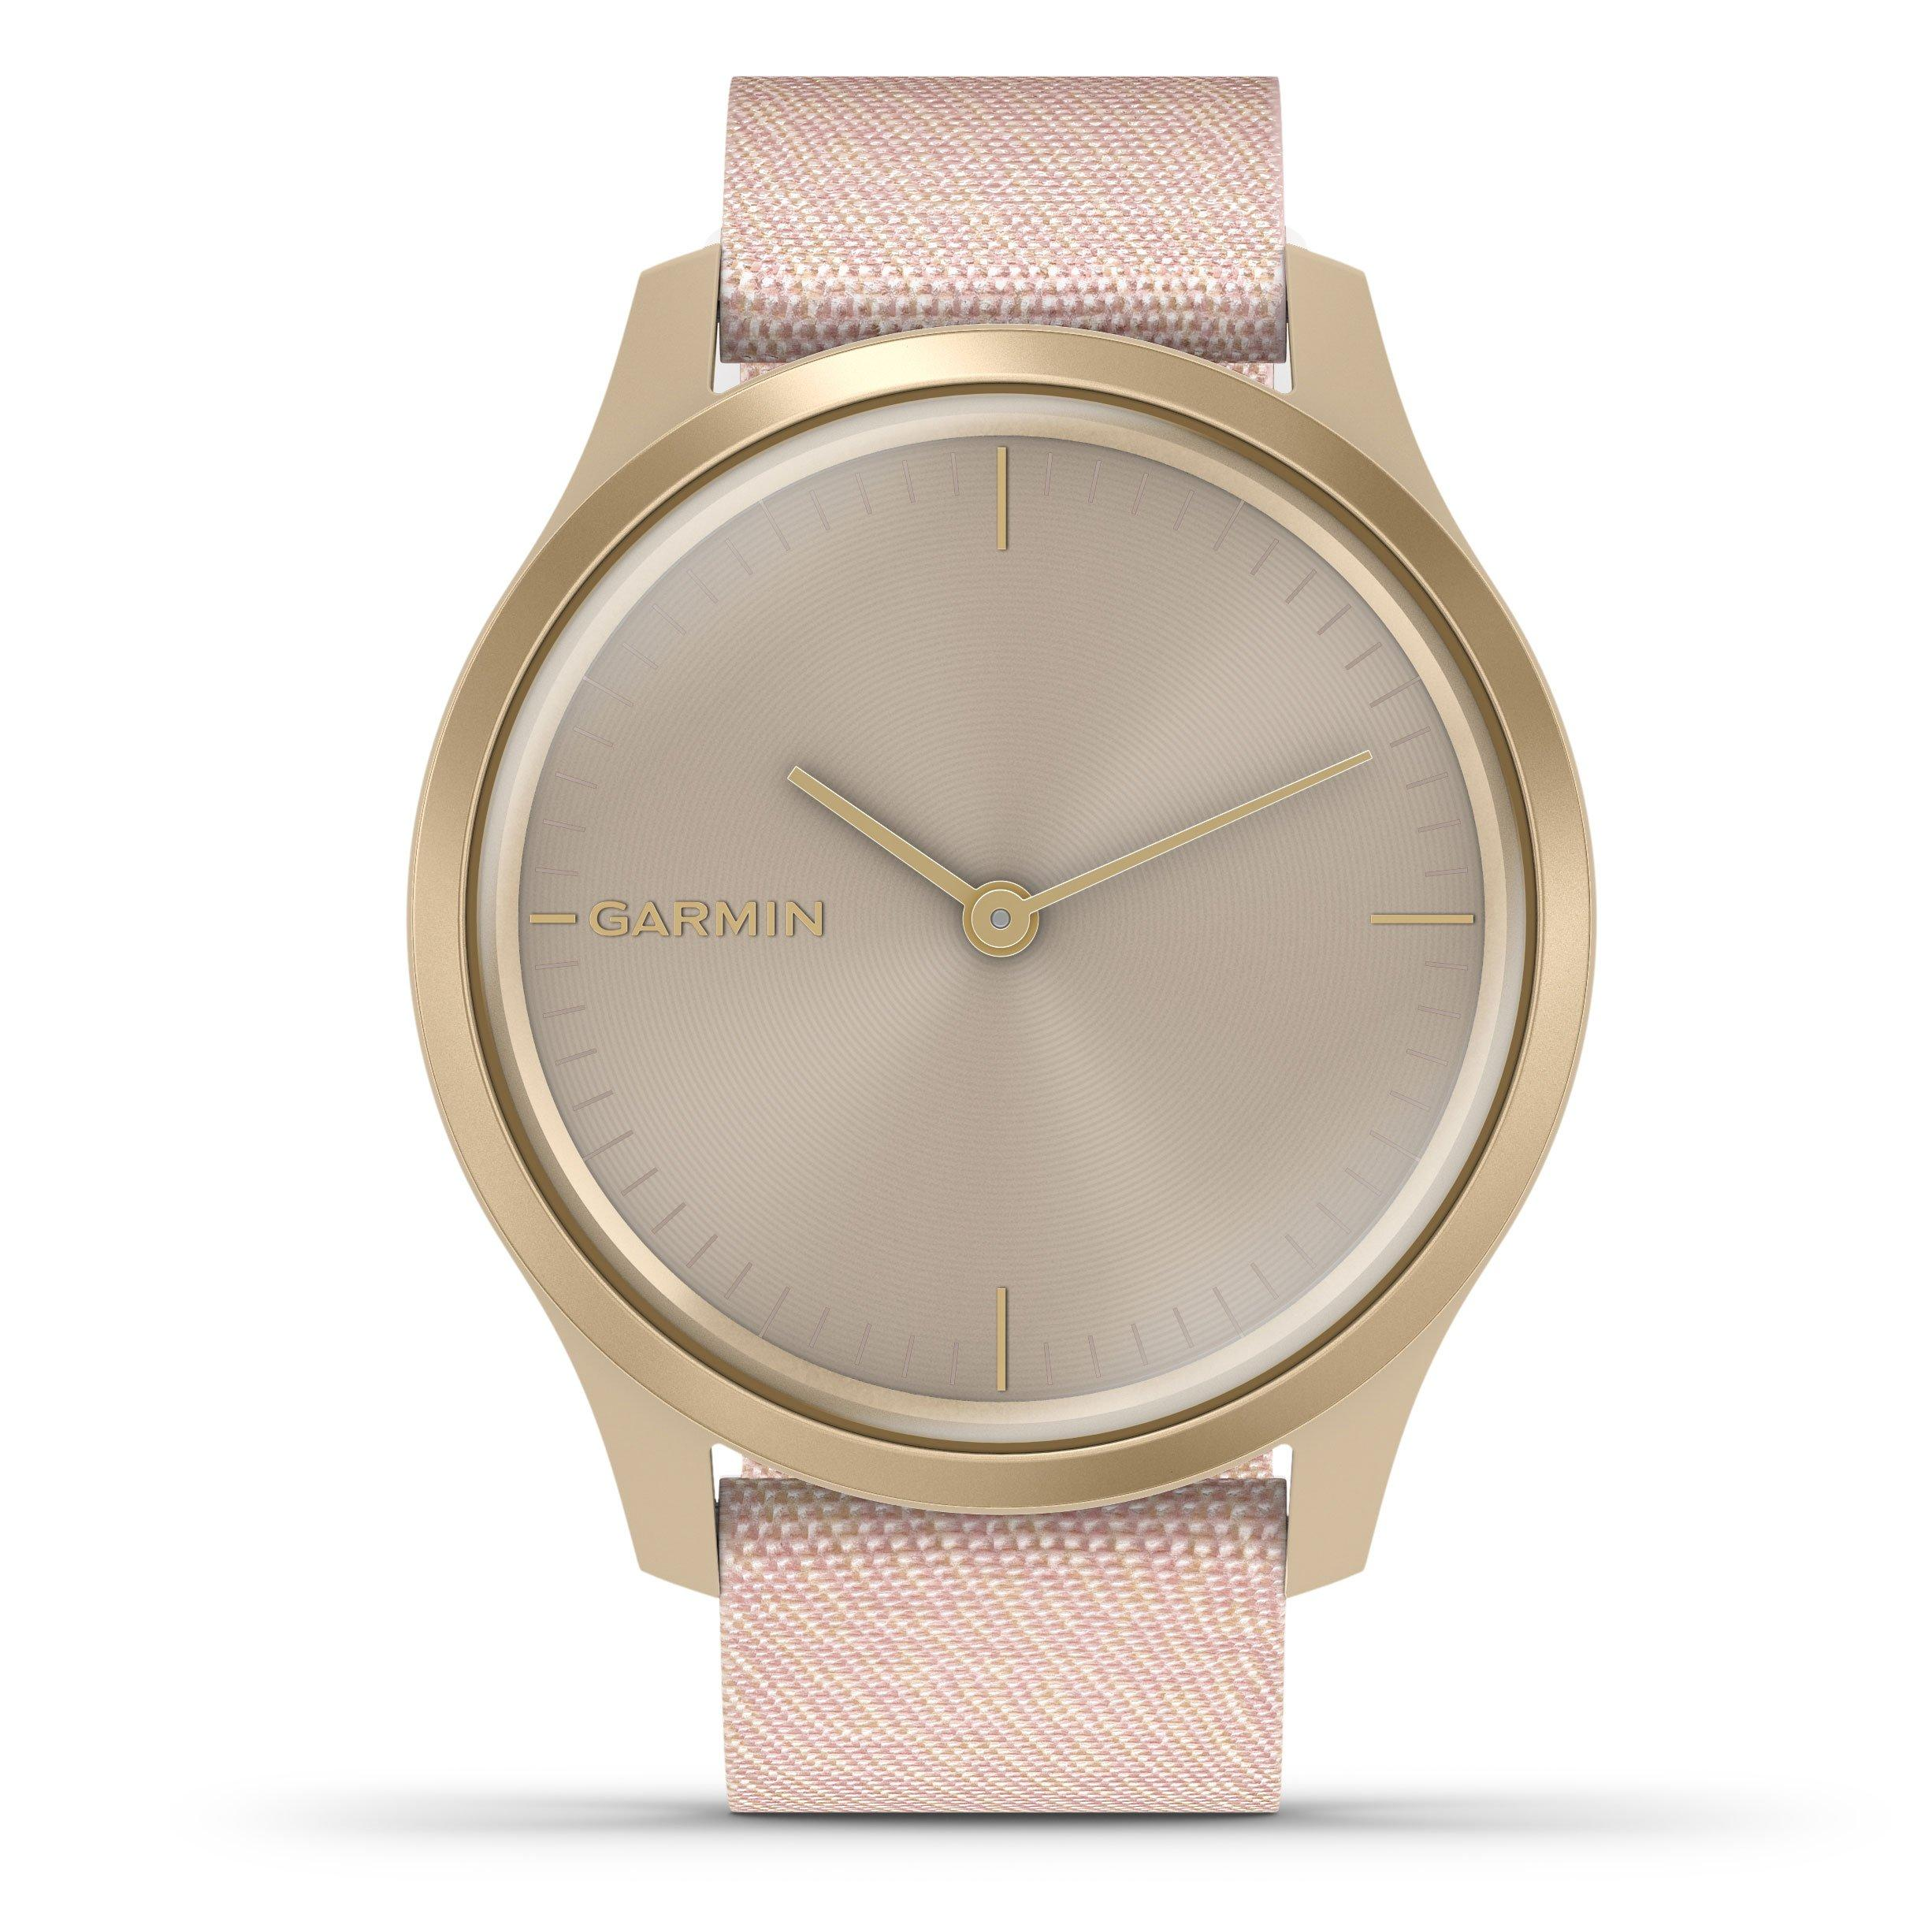 Garmin Vivomove Style Gold Plated Smartwatch